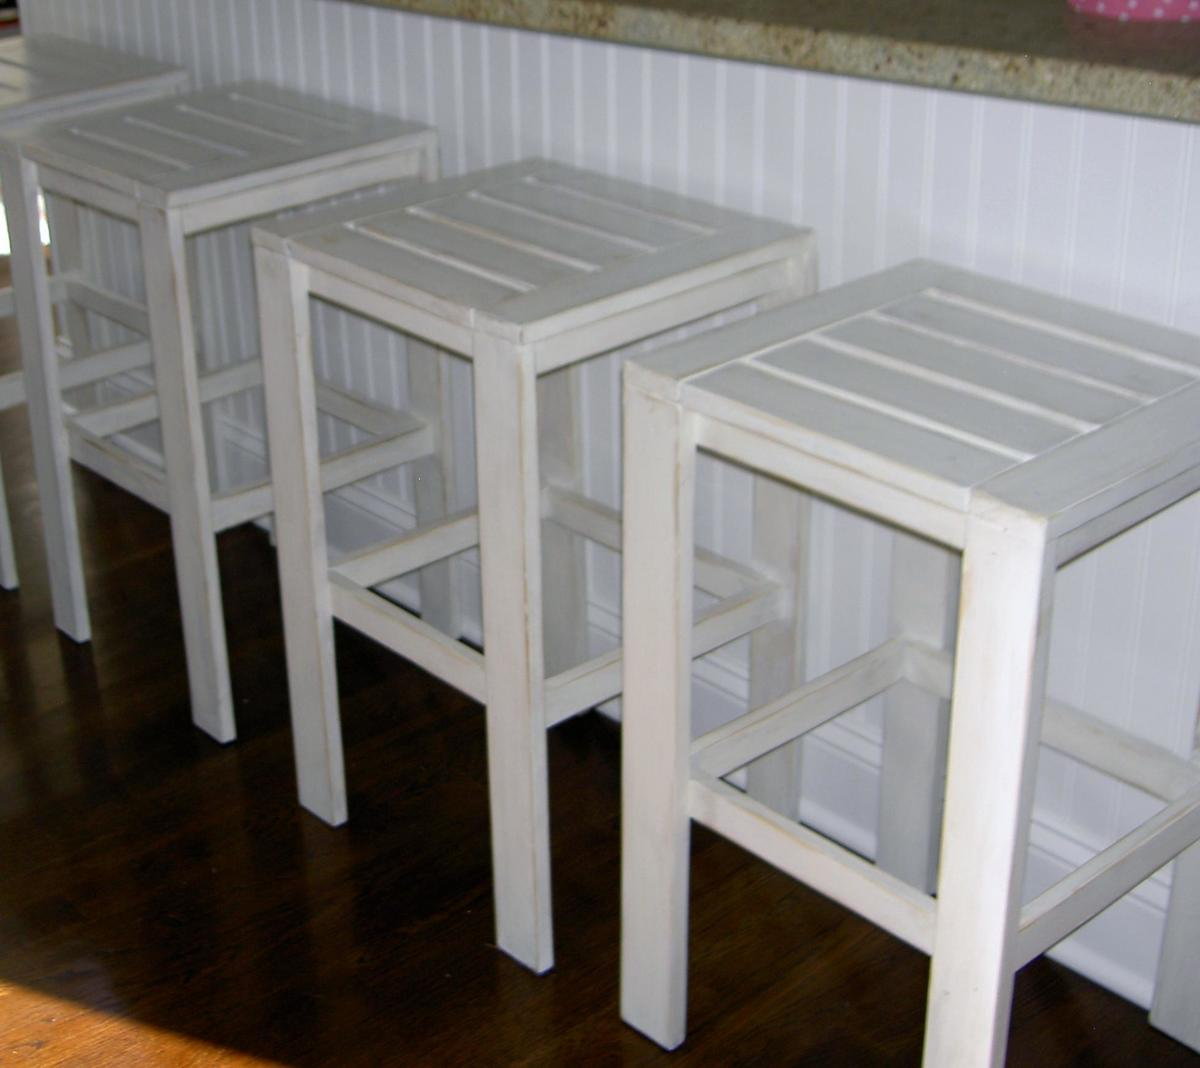 ... White | Build a Stools for the Bar Table for the Simple Outdoor